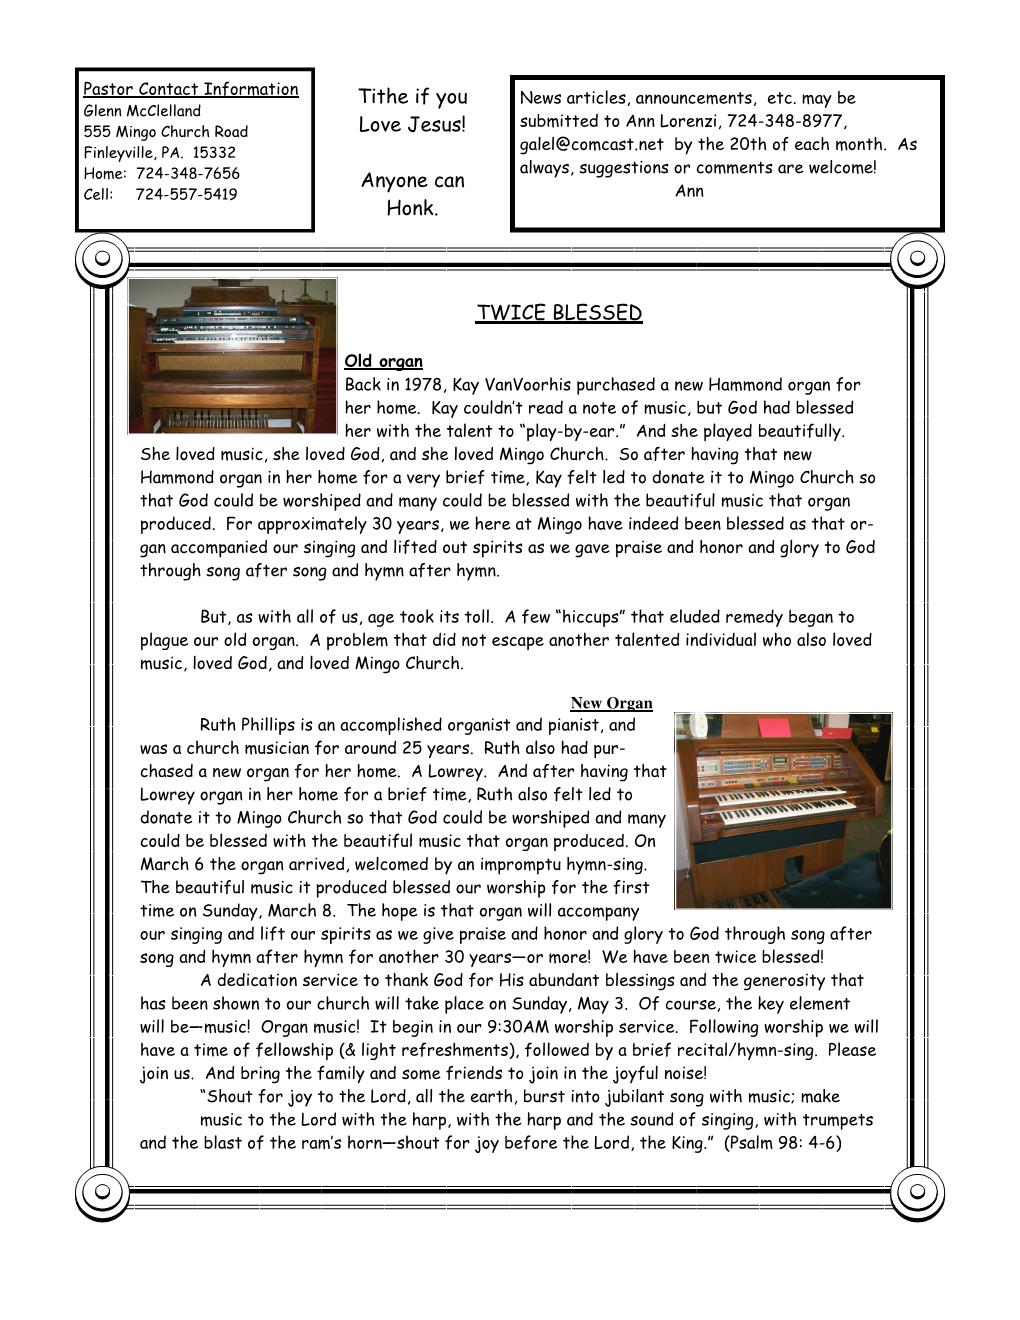 APRILMAY NEWSLETTER Page 003.jpg